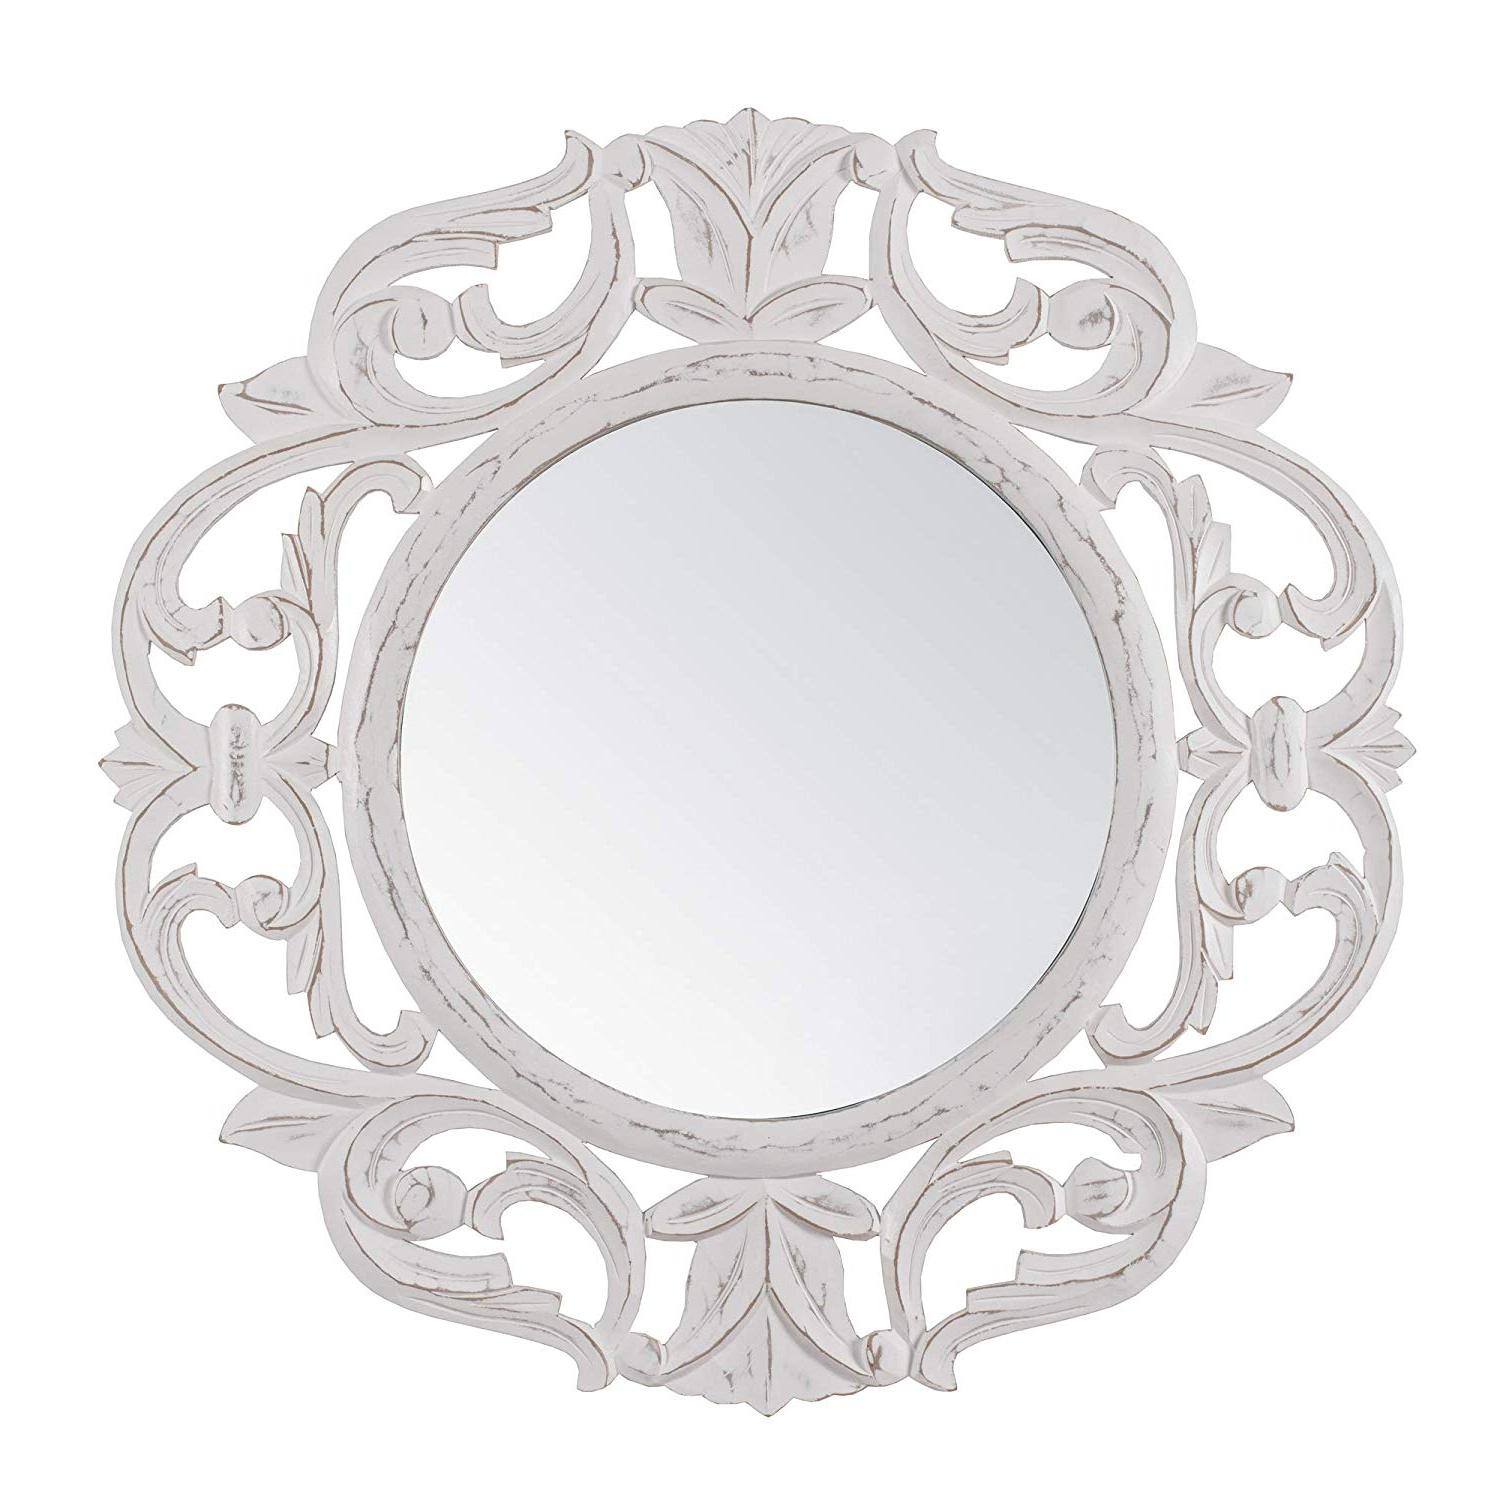 White Decorative Wall Mirrors In Best And Newest Madeleine Home Alba Decorative Wall Mirror (View 5 of 20)